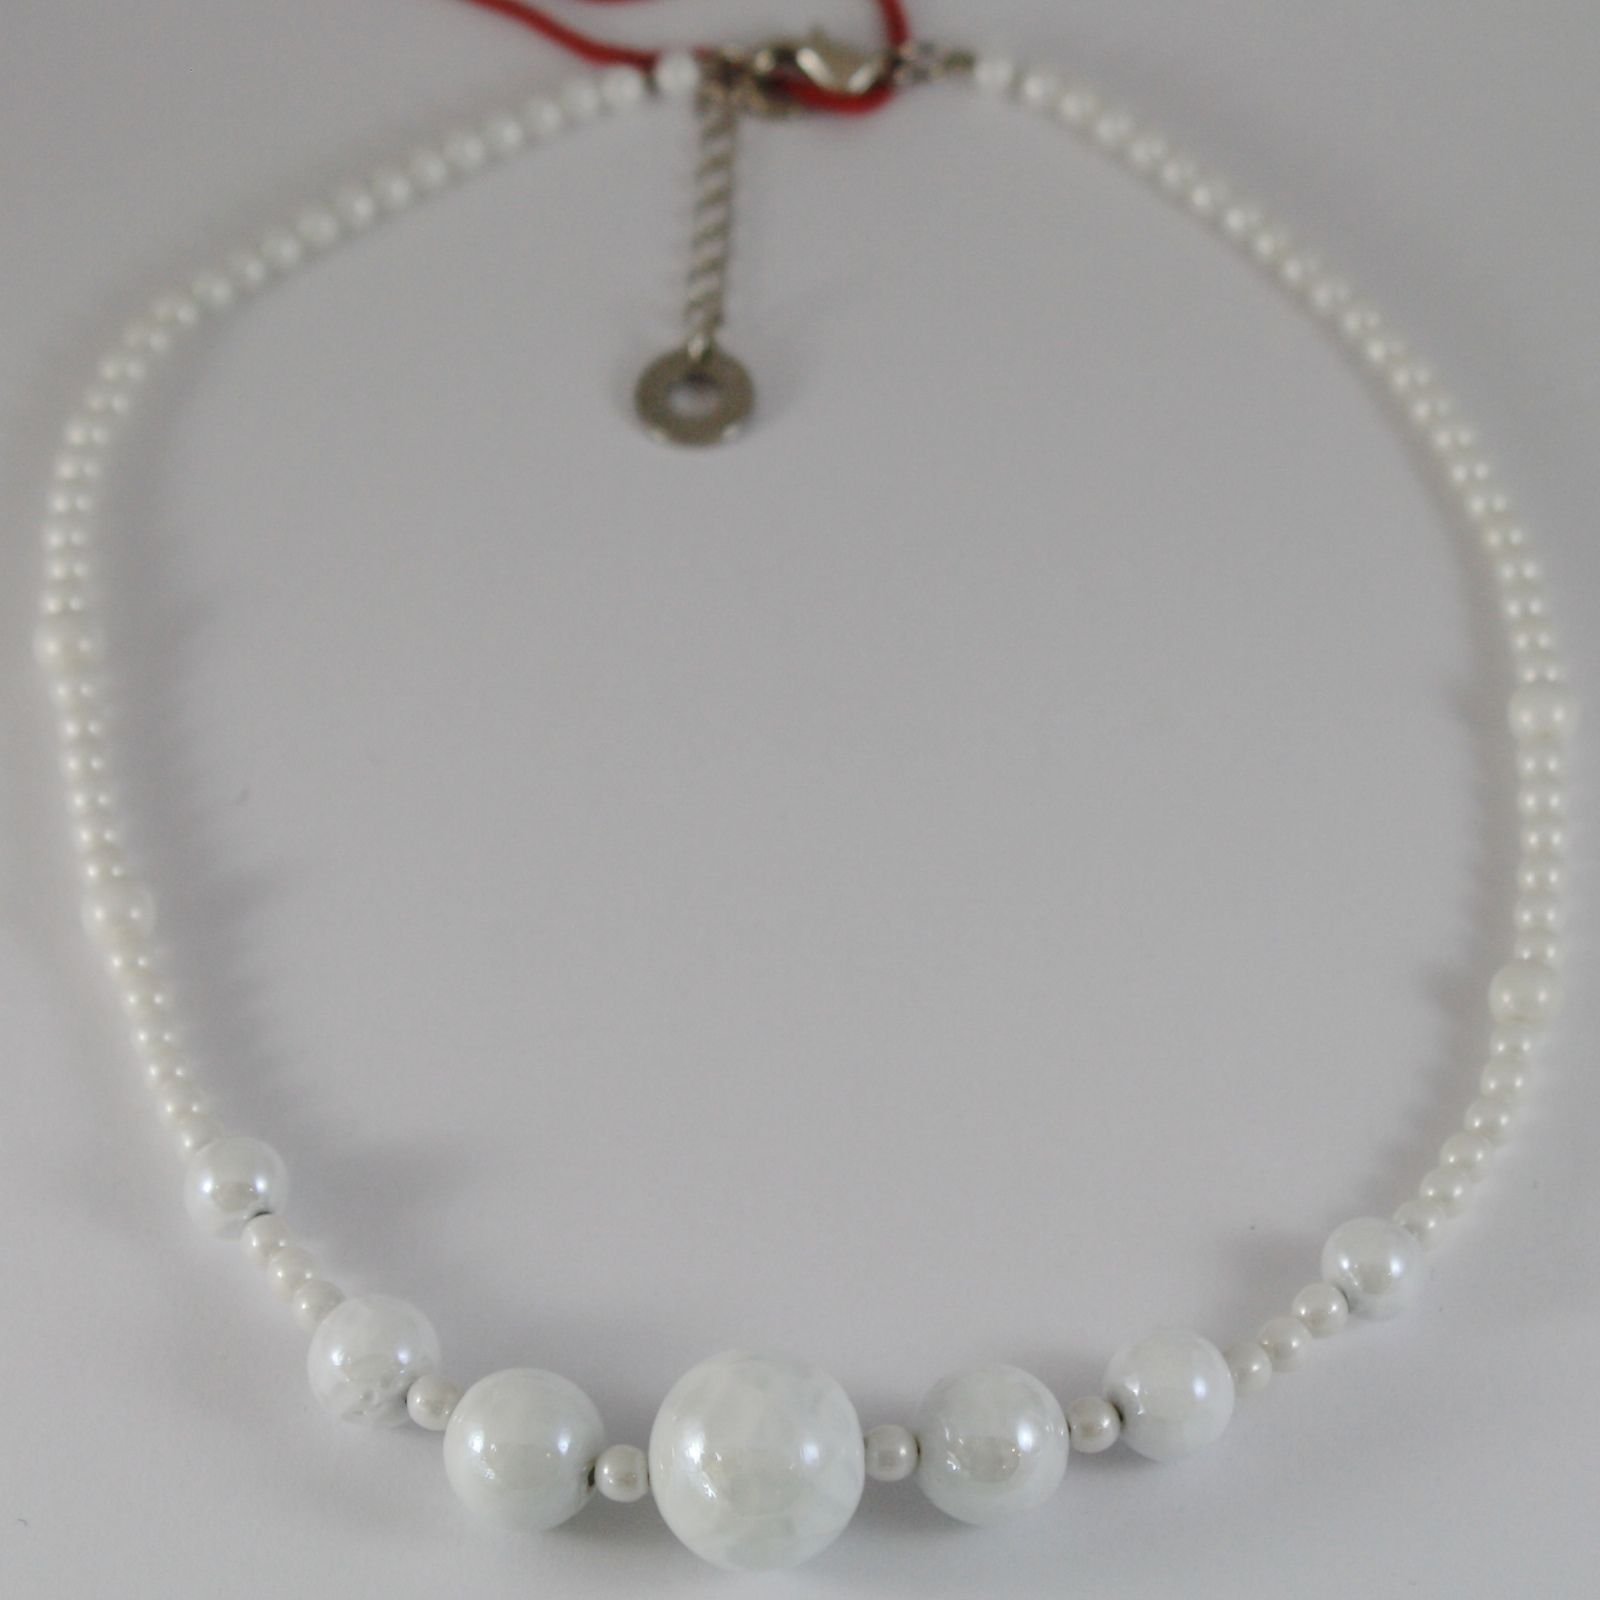 ANTICA MURRINA VENEZIA WHITE SPHERE BALLS NECKLACE, PERLEADI, 50 CM, 20 INCHES